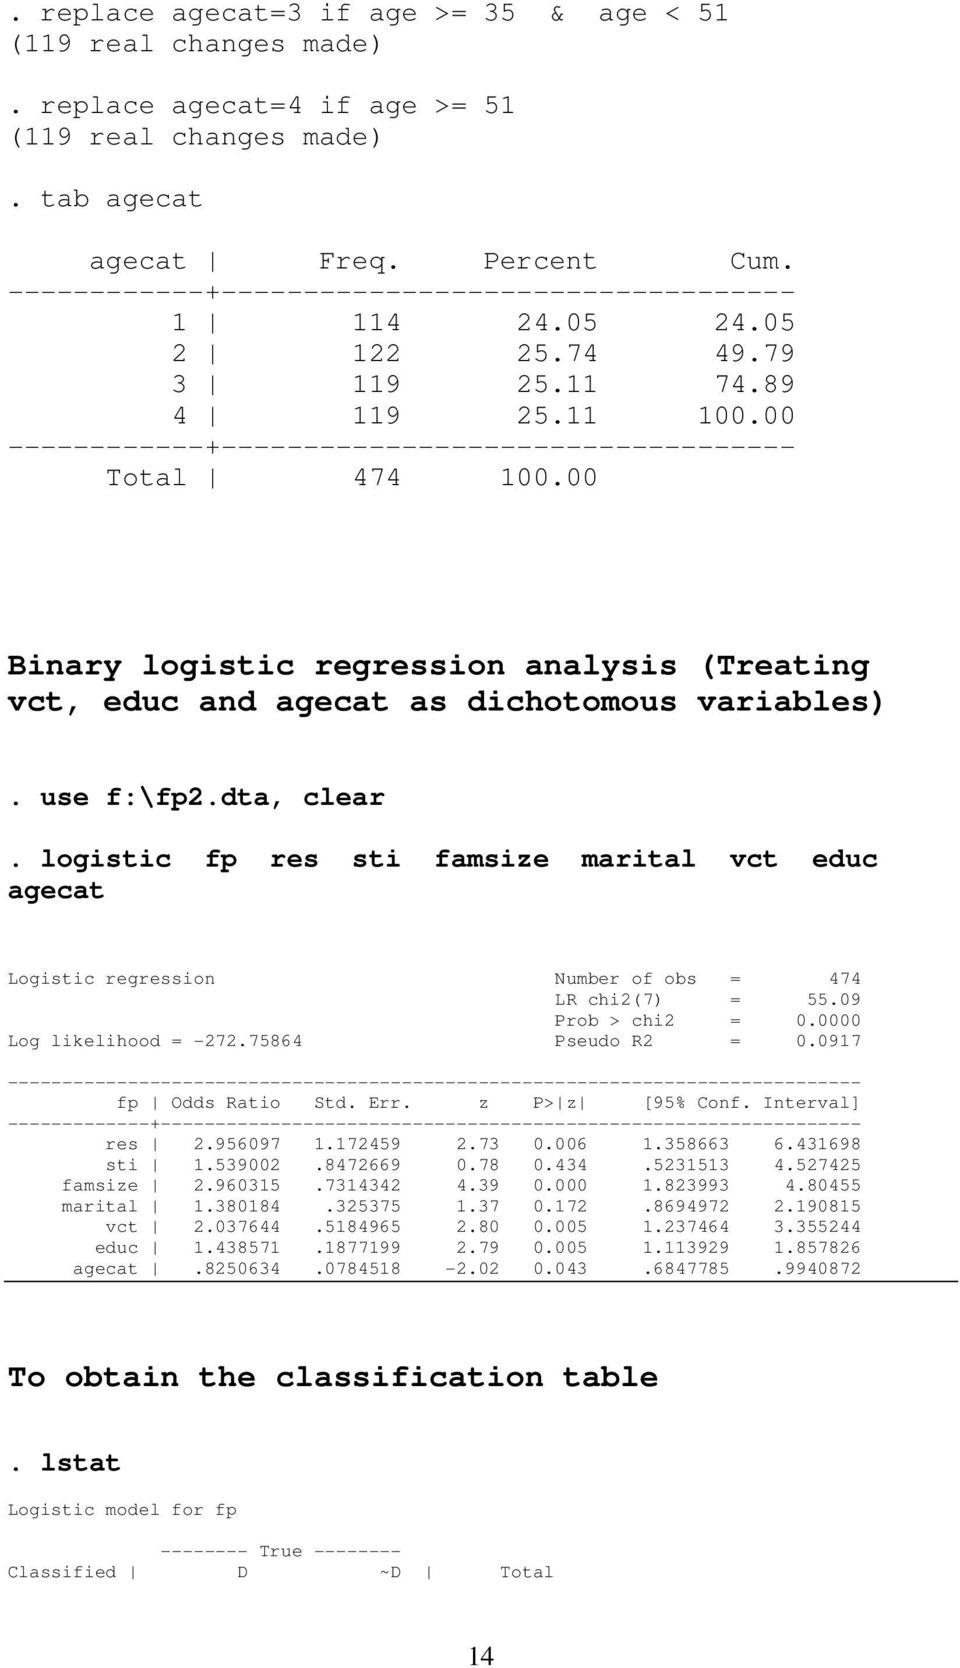 logistic fp res sti famsize marital vct educ agecat Logistic regression Number of obs = 474 LR chi2(7) = 55.09 Prob > chi2 = 0.0000 Log likelihood = -272.75864 Pseudo R2 = 0.